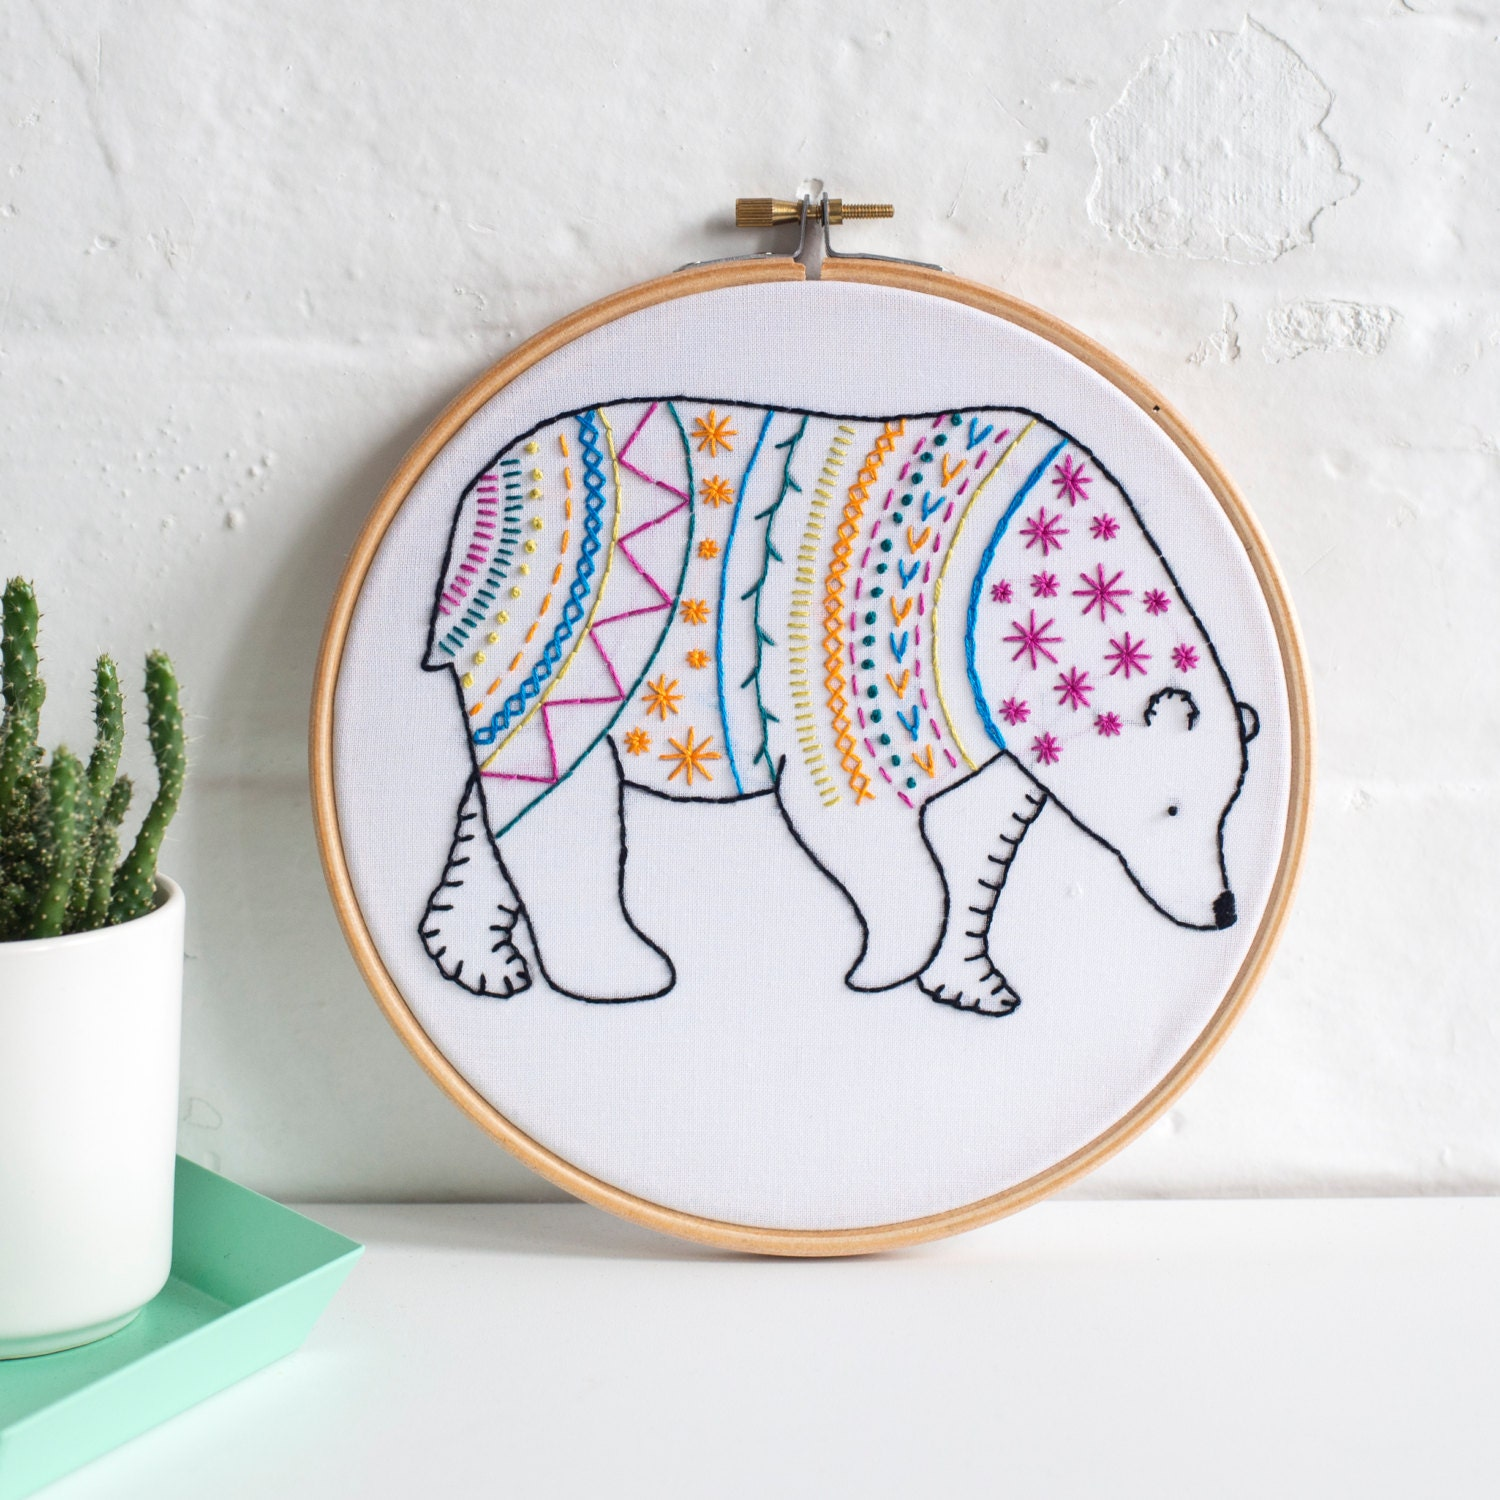 Bear Contemporary Embroidery Kit  Embroidery Hoop Art  Learn How To  Embroider  Hand Embroidery